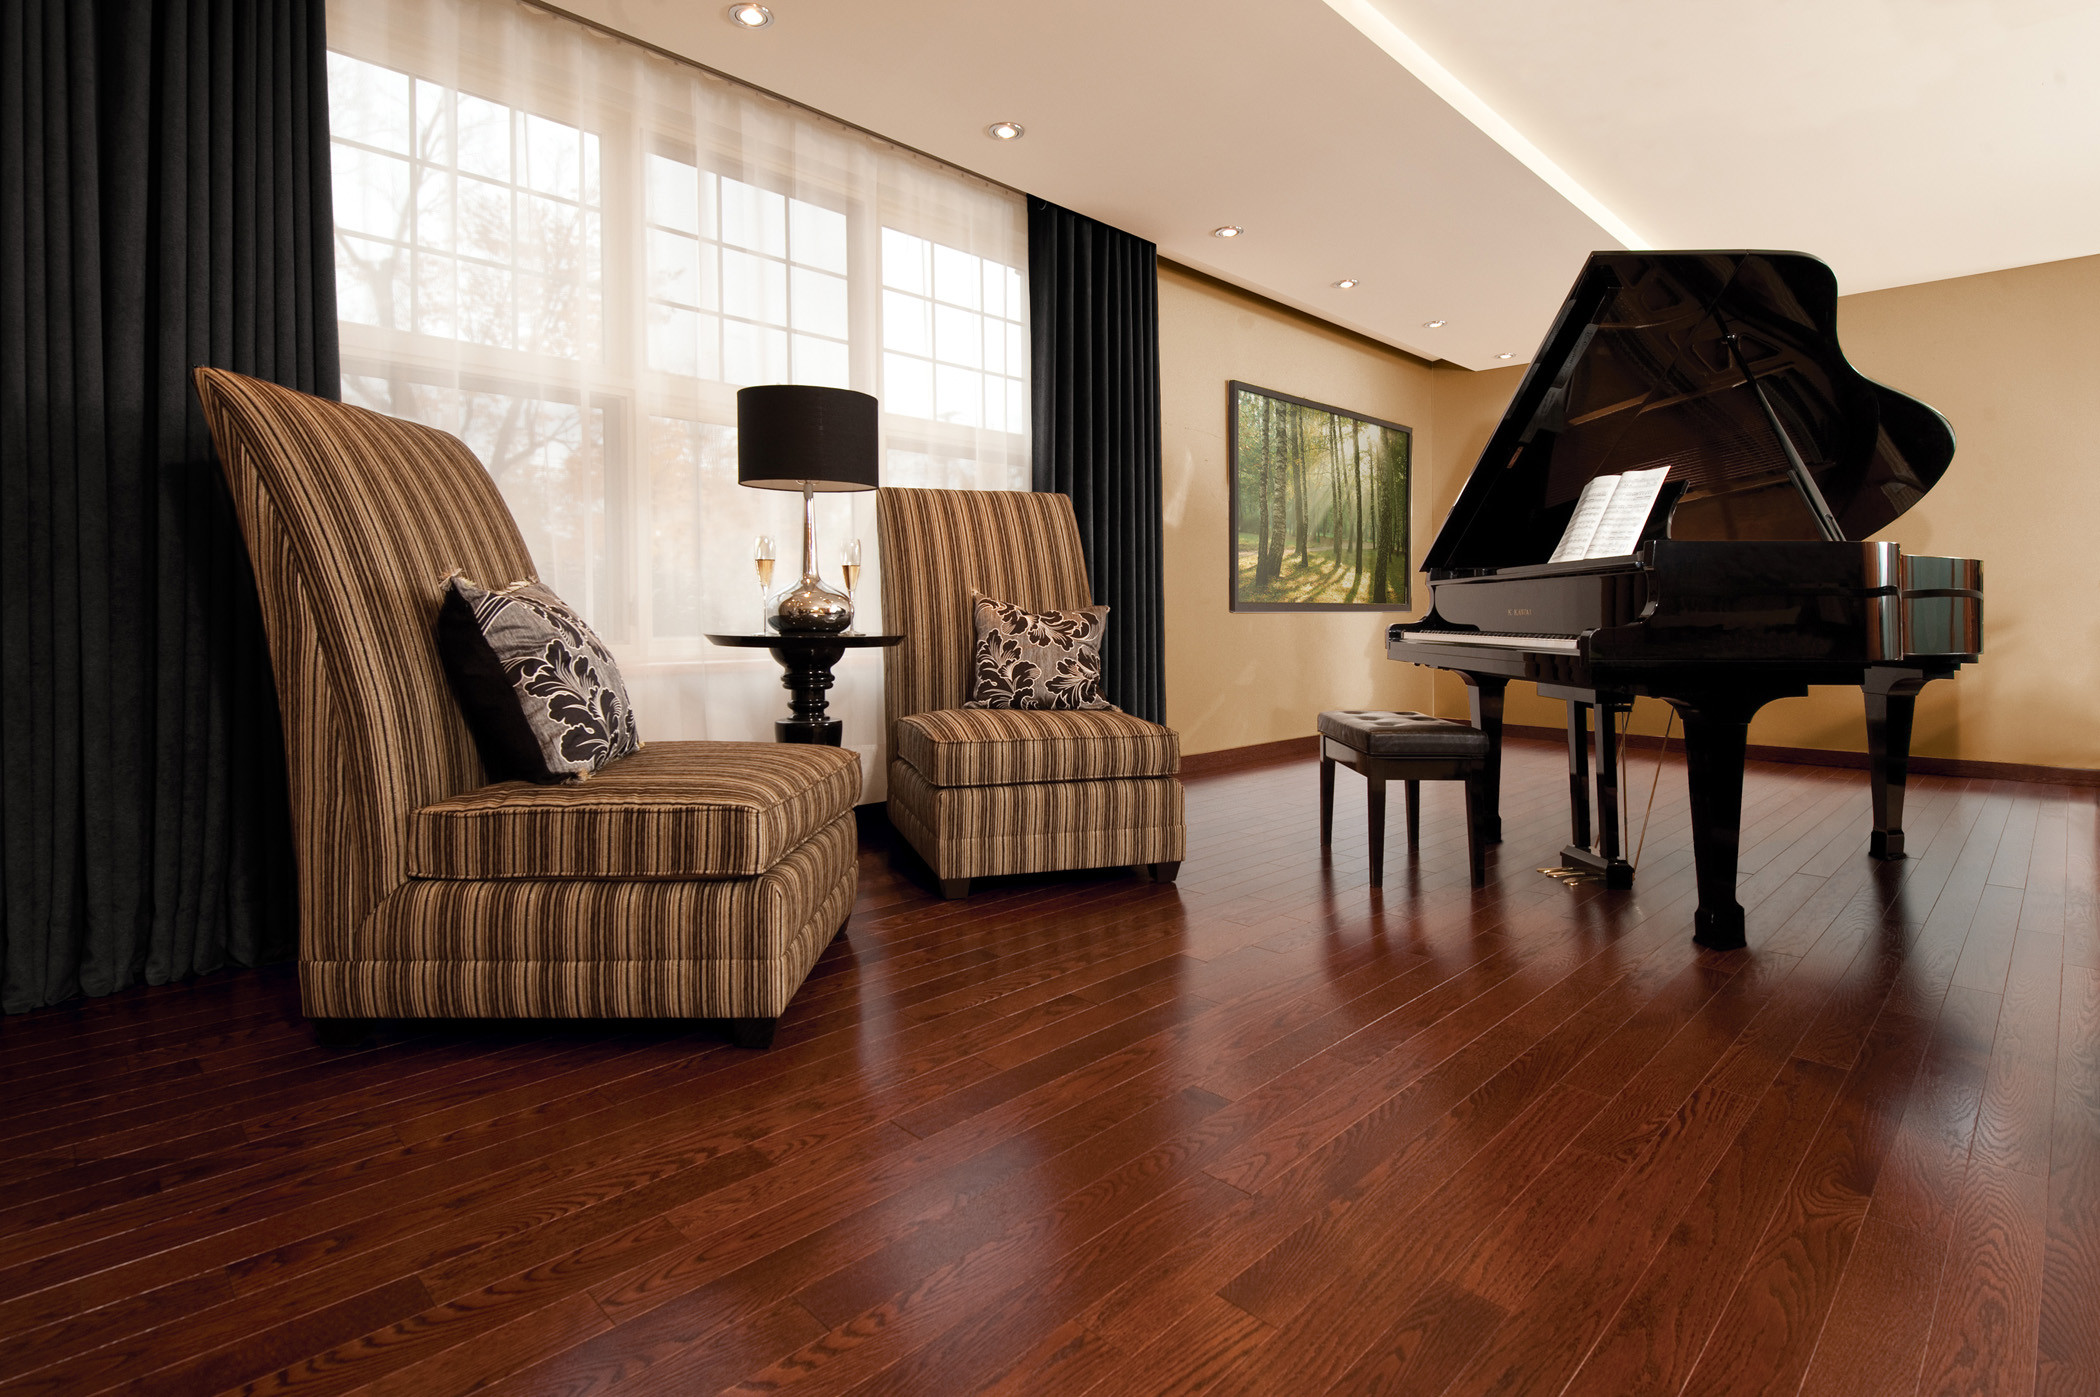 average cost per square foot to refinish hardwood floors of cost per square foot to refinish hardwood floors cork flooring in an pertaining to cost per square foot to refinish hardwood floors hardwood floor design hardwood floor refinishing staining hardwood